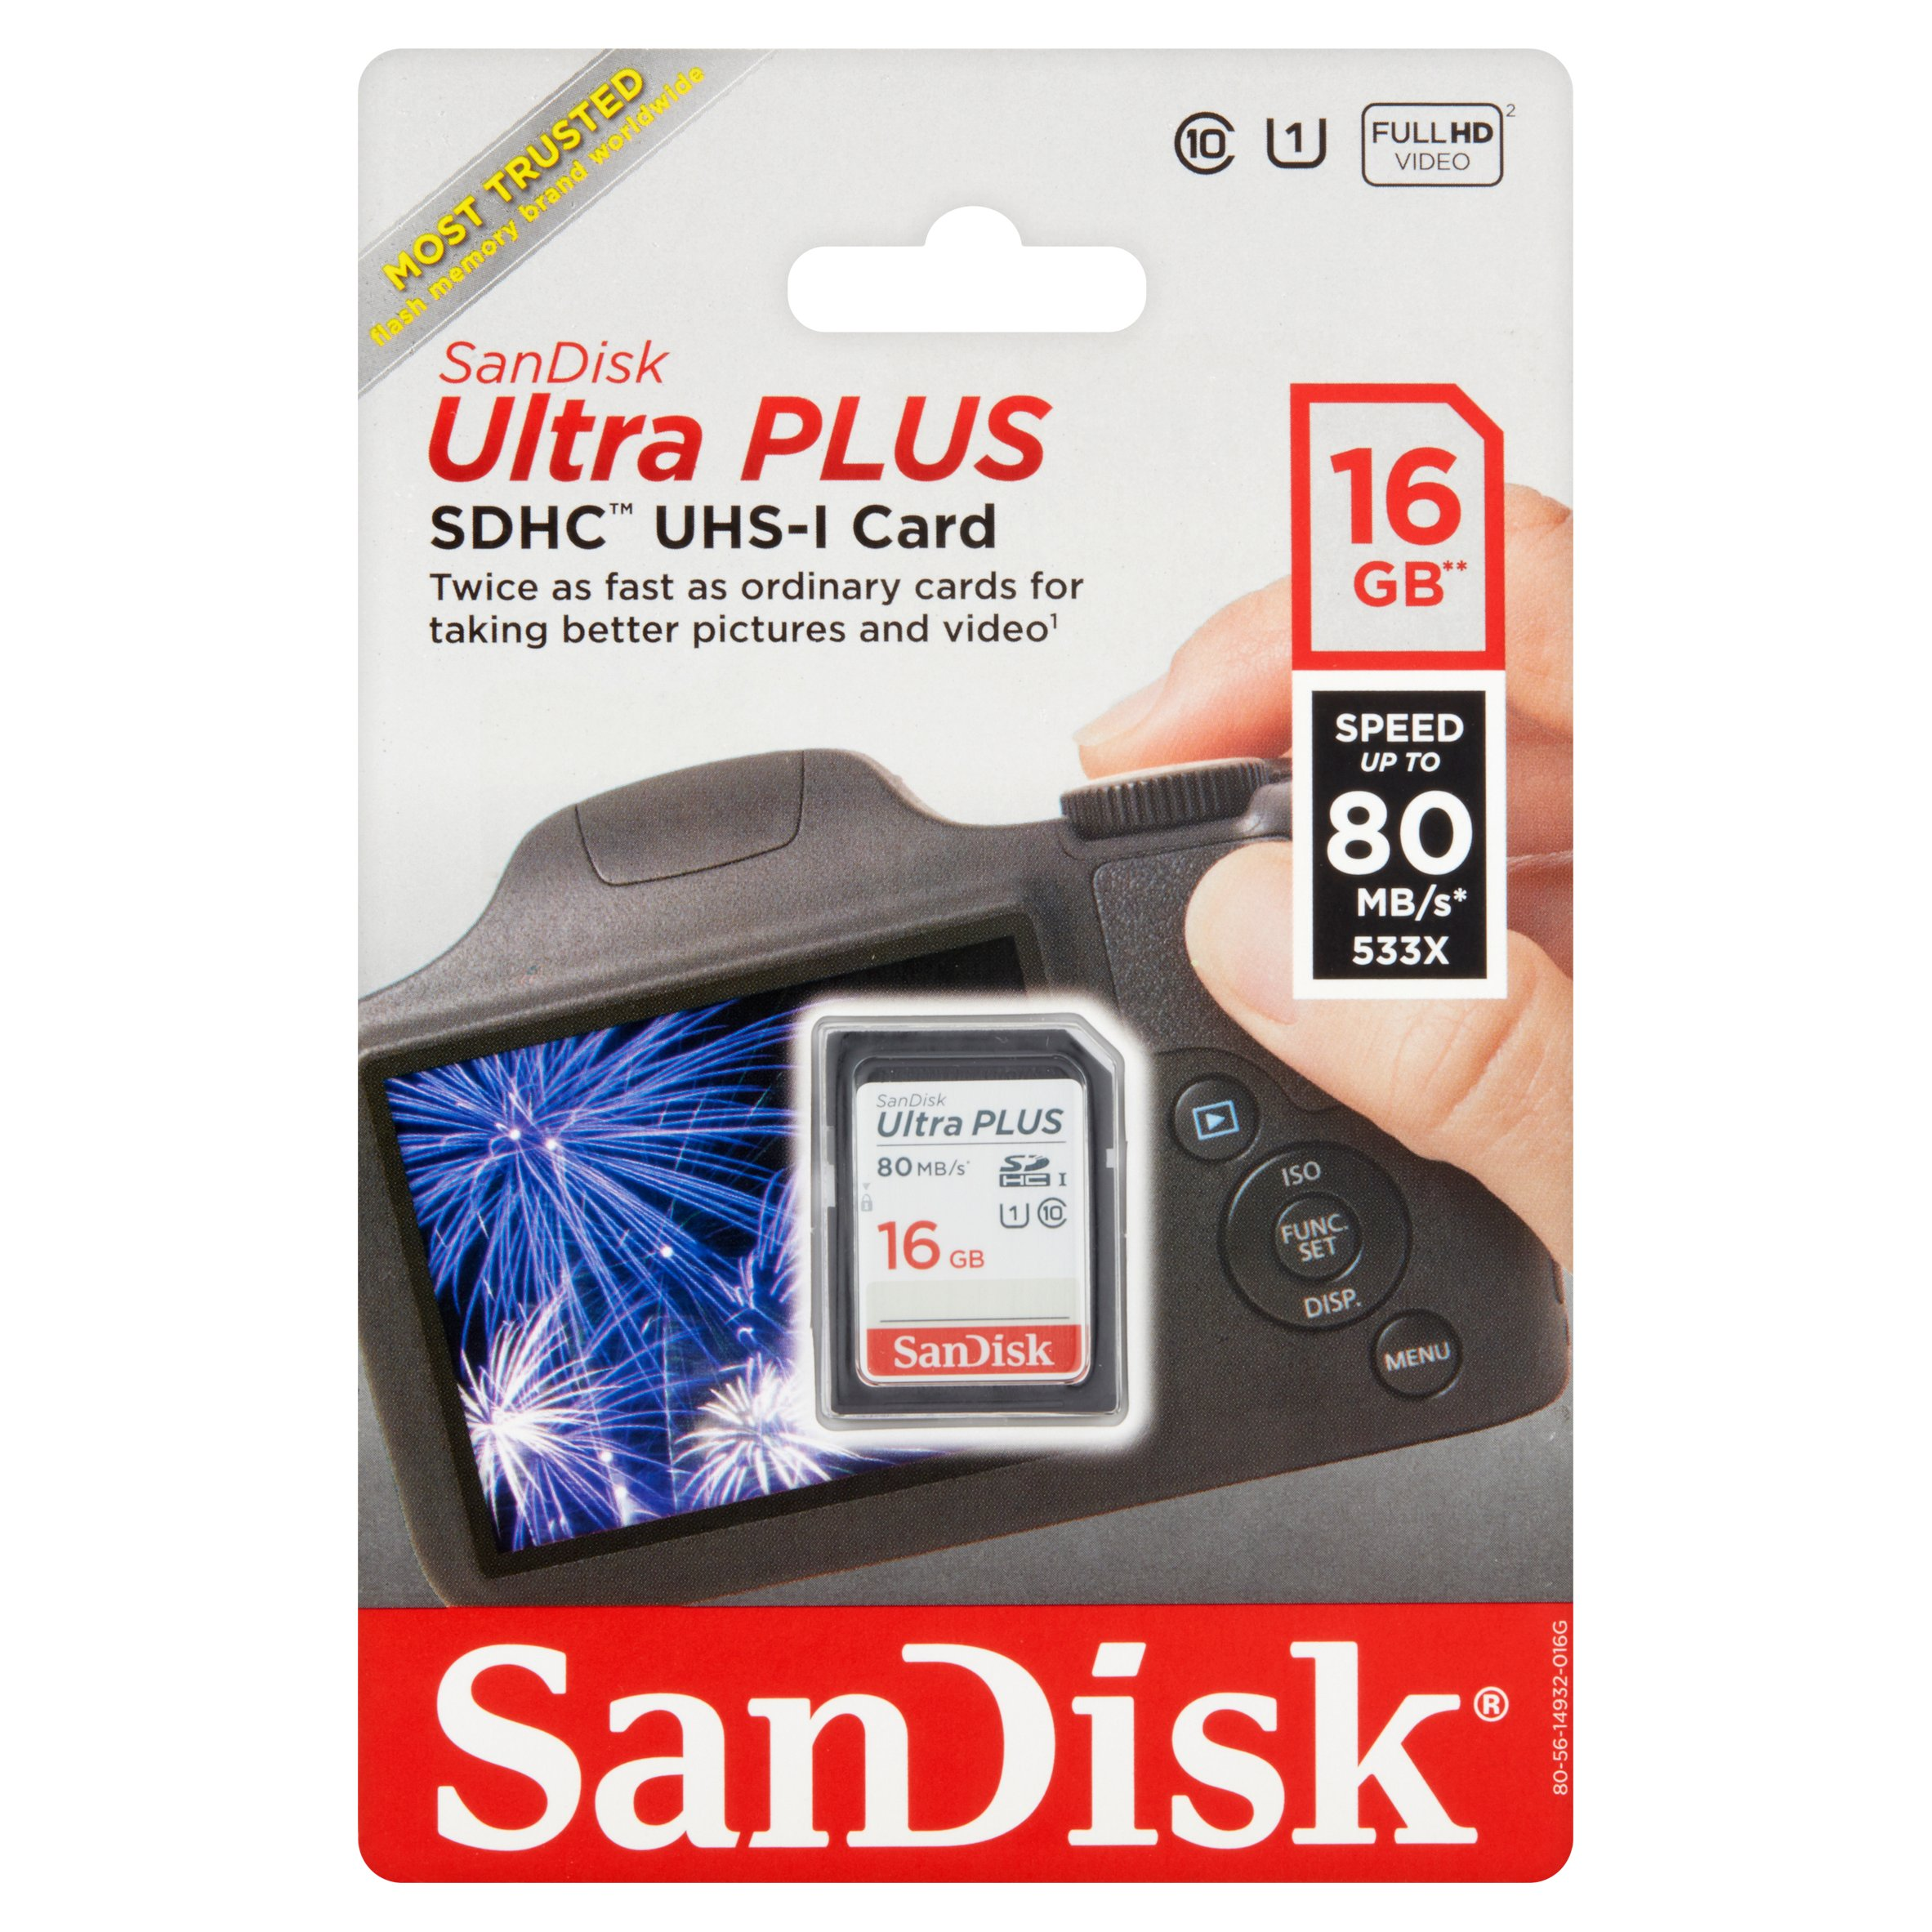 SanDisk Ultra PLUS UHS-1 16GB SD Card, Class 10, Camera Bar